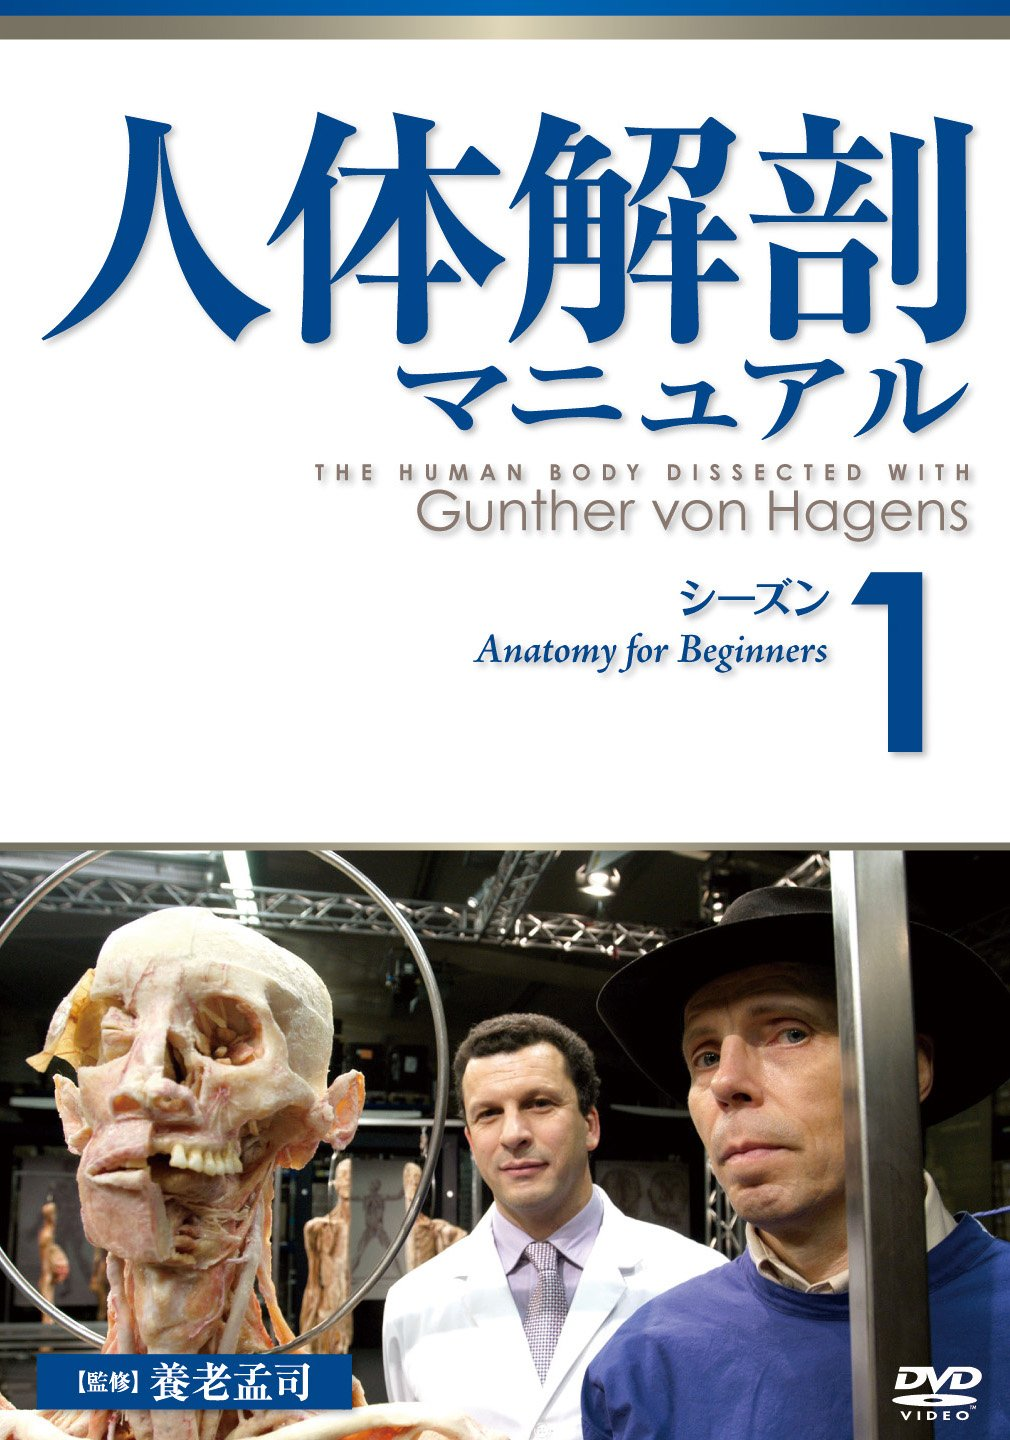 Amazon.com: Special Interest - Anatomy For Beginners Season 1 (4DVDS ...